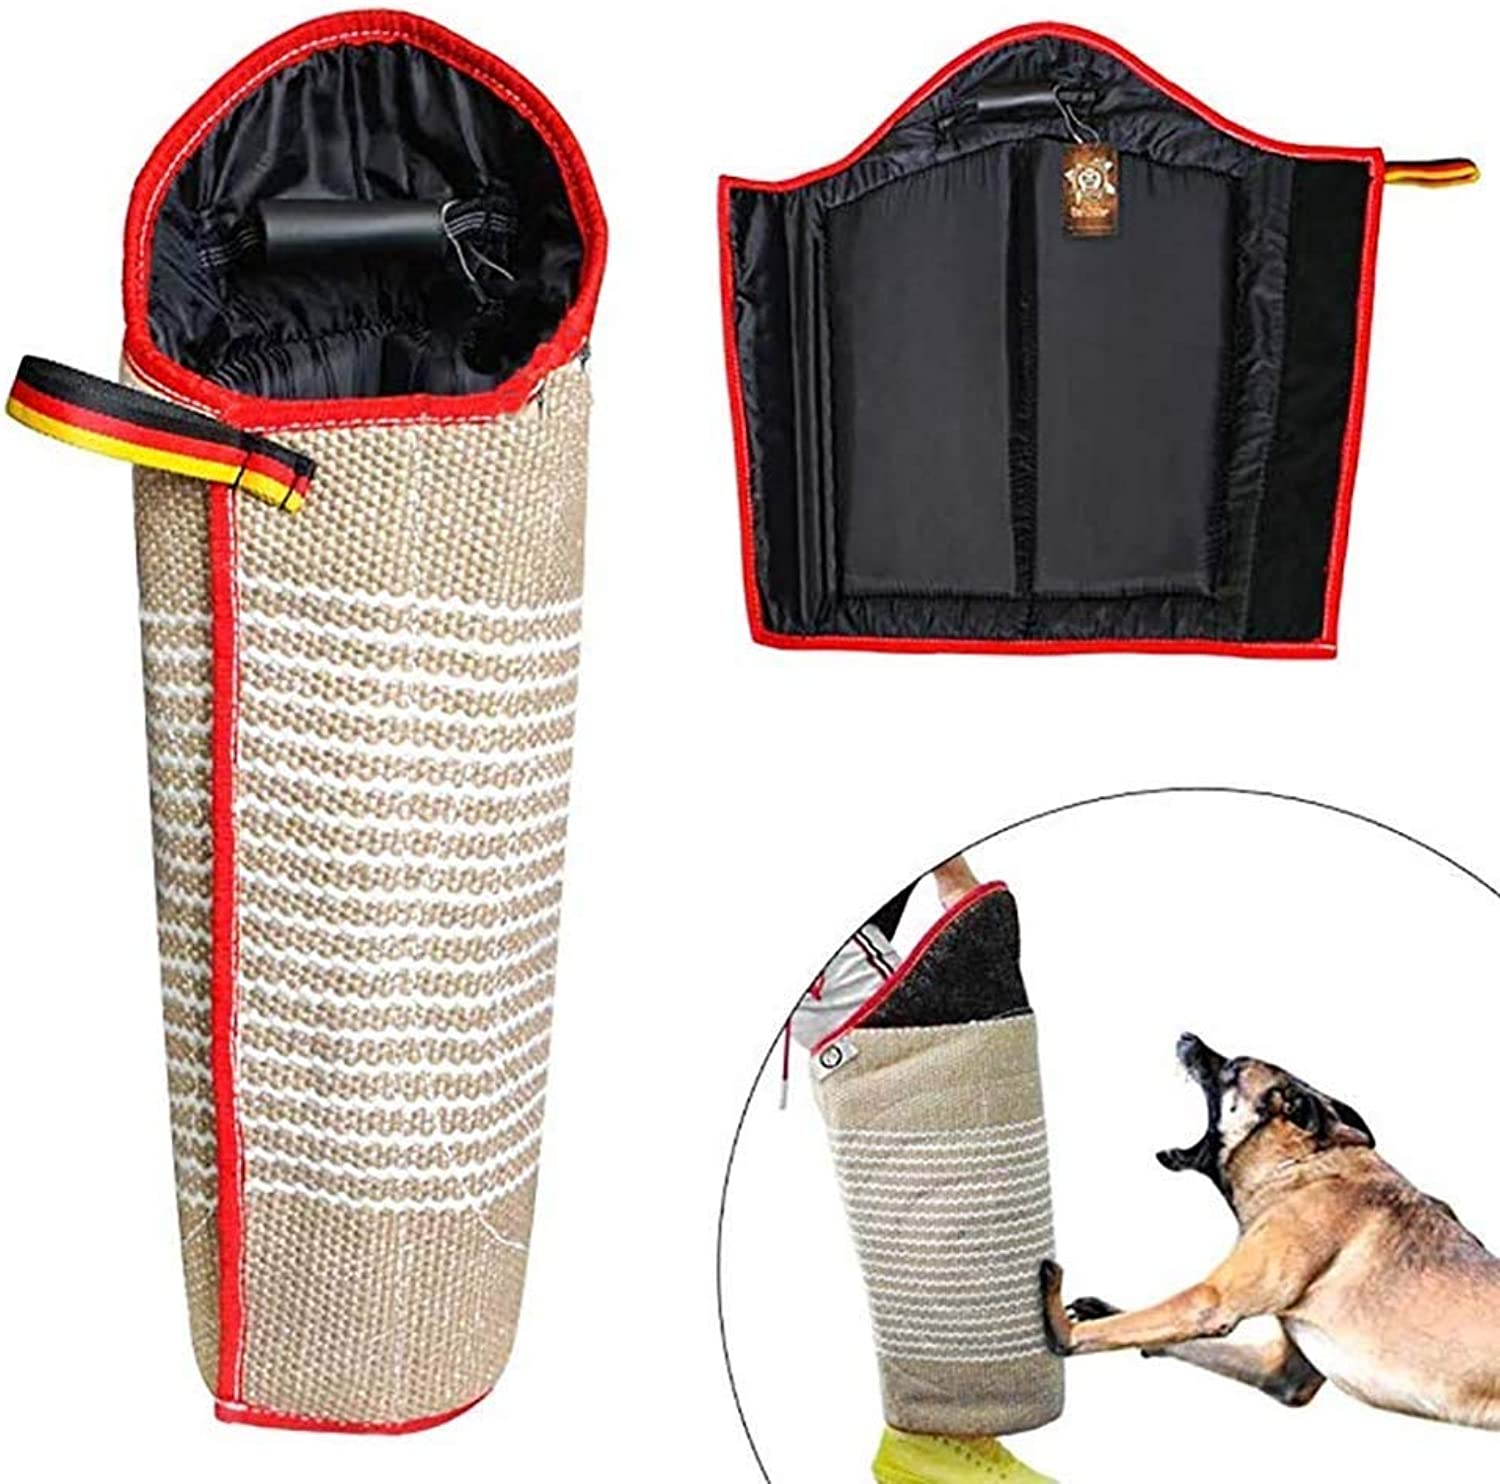 LJXiioo Dog Training Bite Leg Sleeves with Handle for Training Work Dog Puppy,Long Leg Training Sleeves